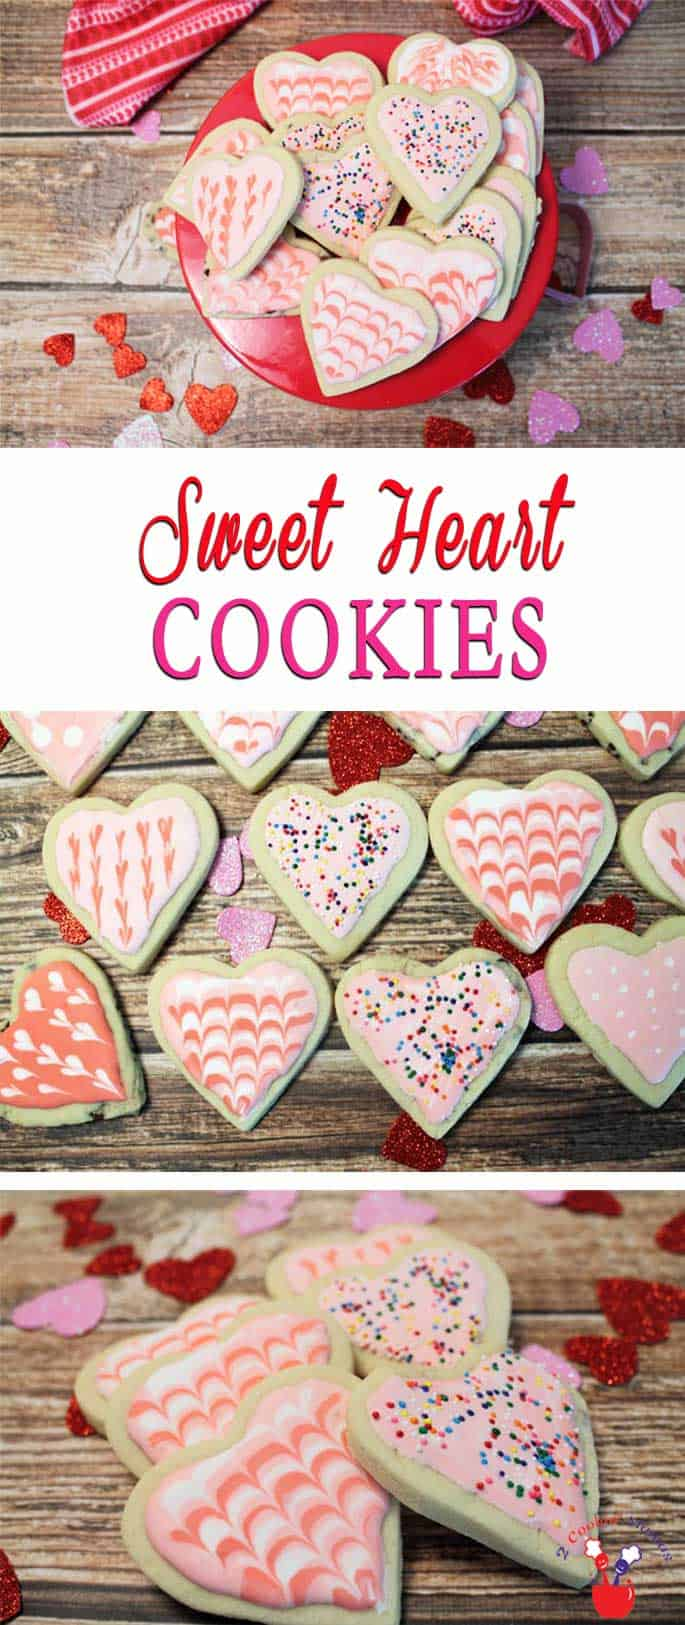 A basic sugar cookie dough makes these Sweet Heart Cookies easy to make. Delicious as they are or decorate with royal icing for your Valentine sweetheart. #cookies #ValentinesDaycookies #sugarcookies #decoratedcookies #royalicing